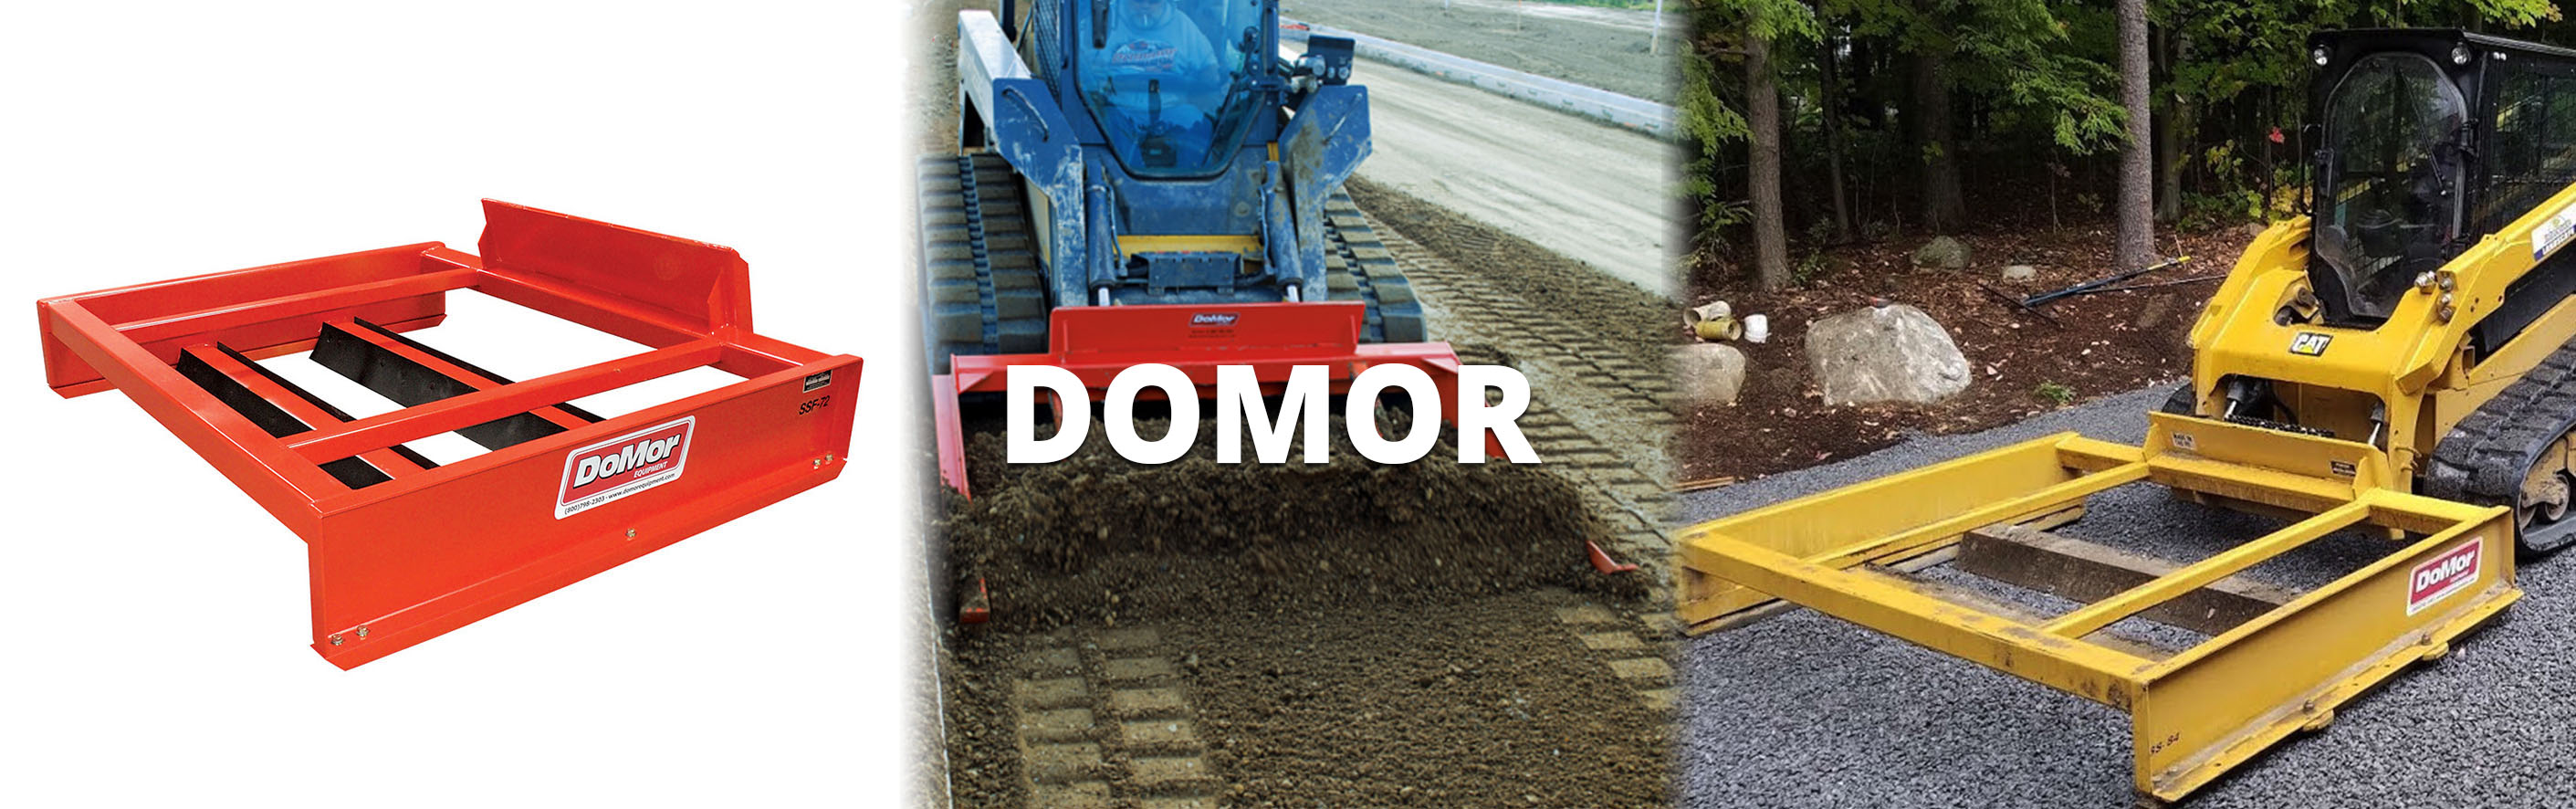 domor-skid-steer-grader-attachments-banner.jpg